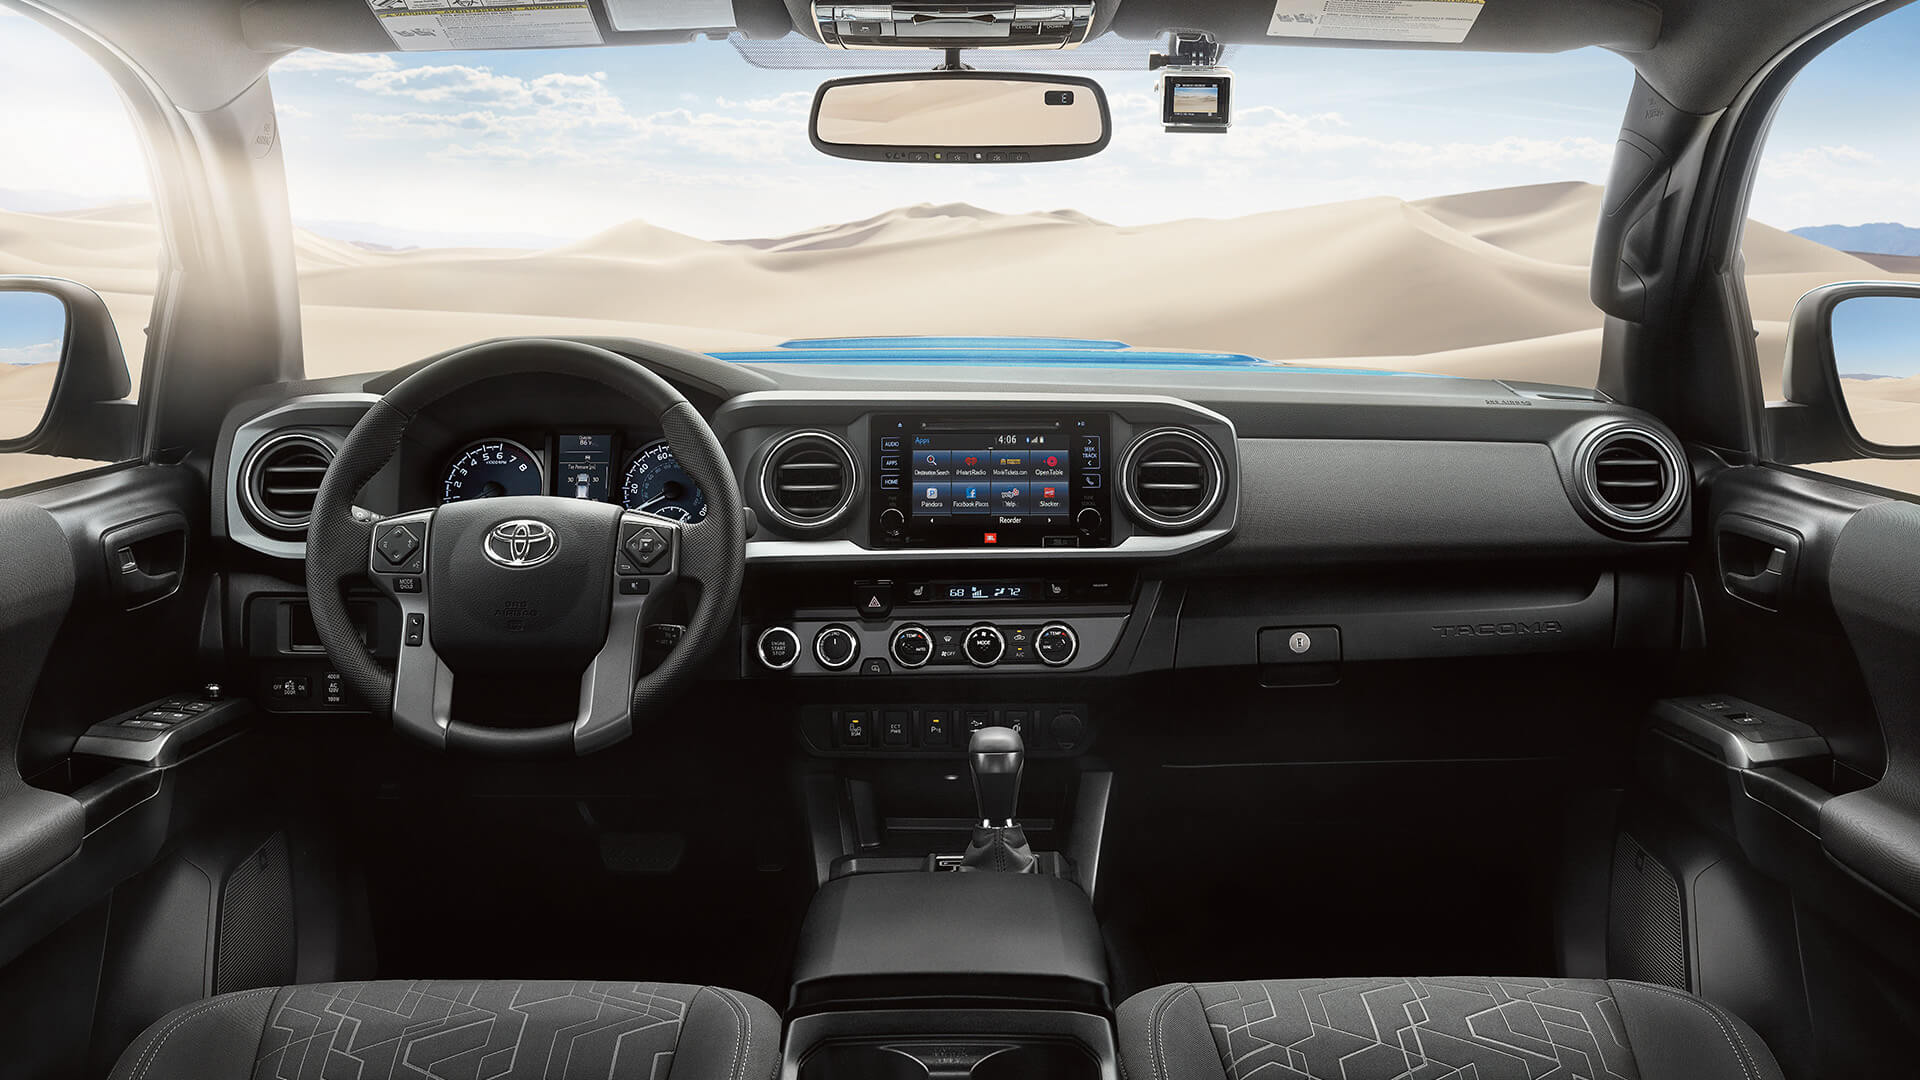 2016 Toyota Tacoma interior features